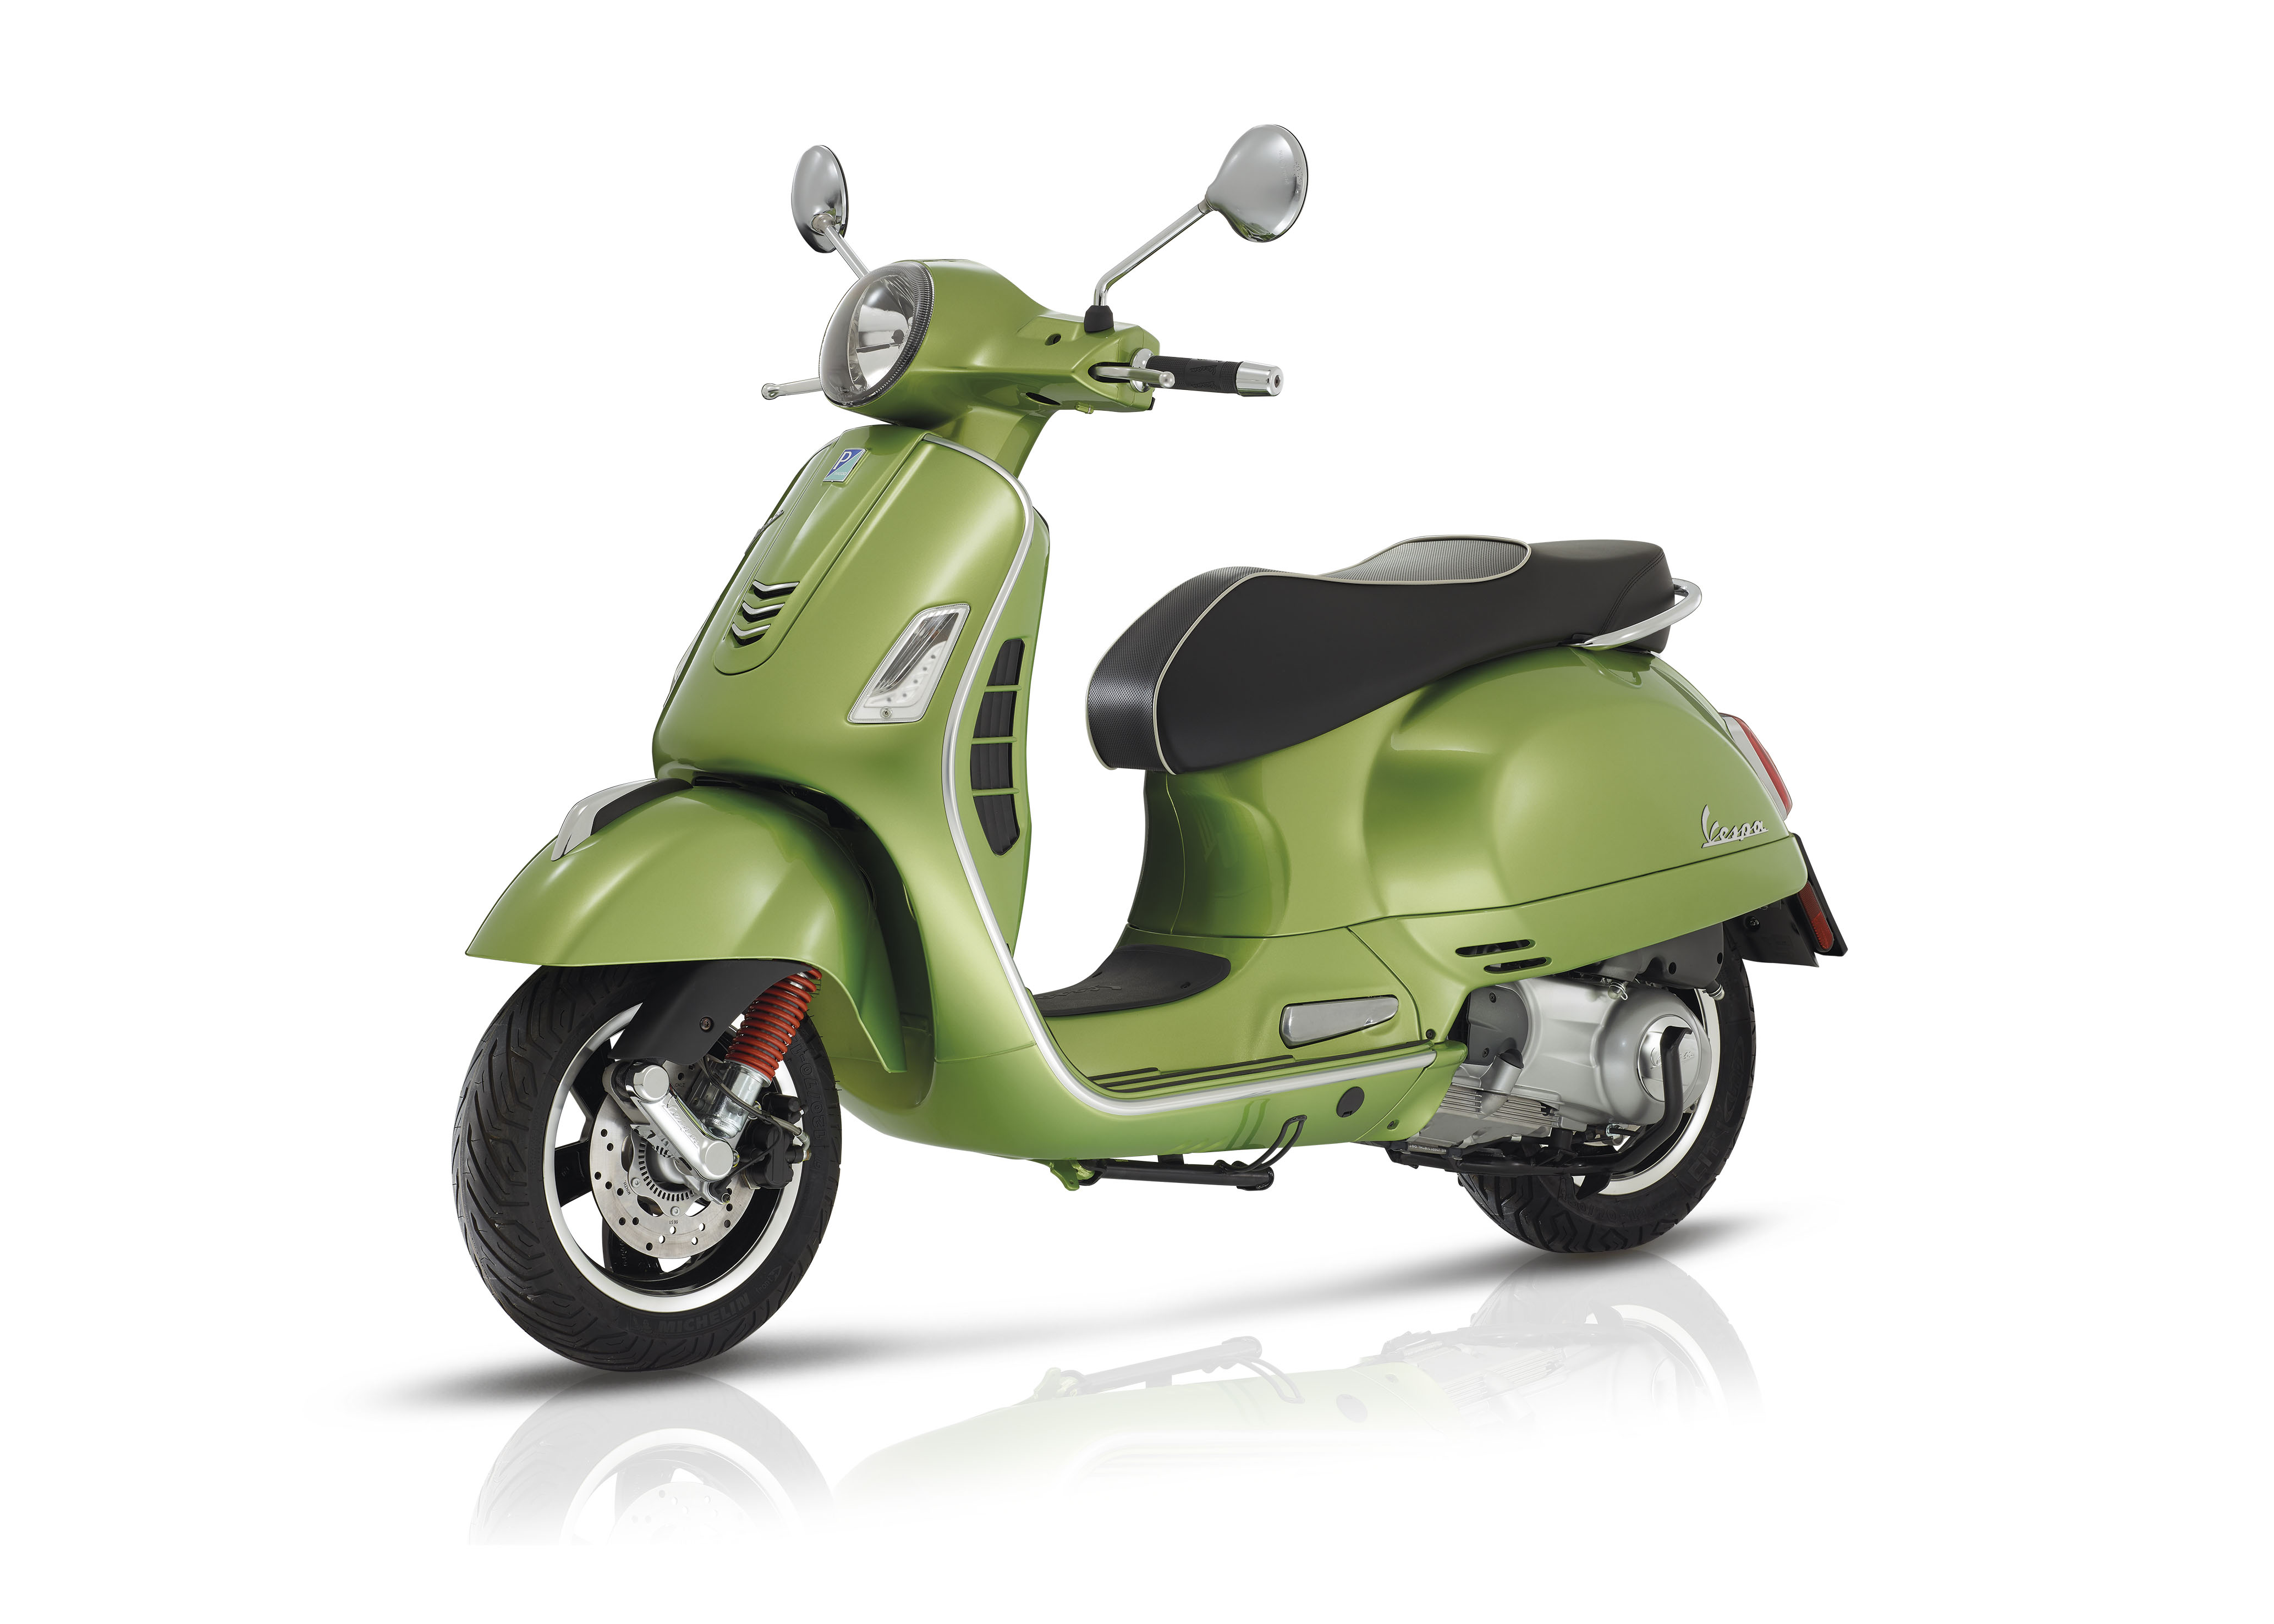 New 2018 Vespa Gts Super 300 Scooters In Greenwood Village